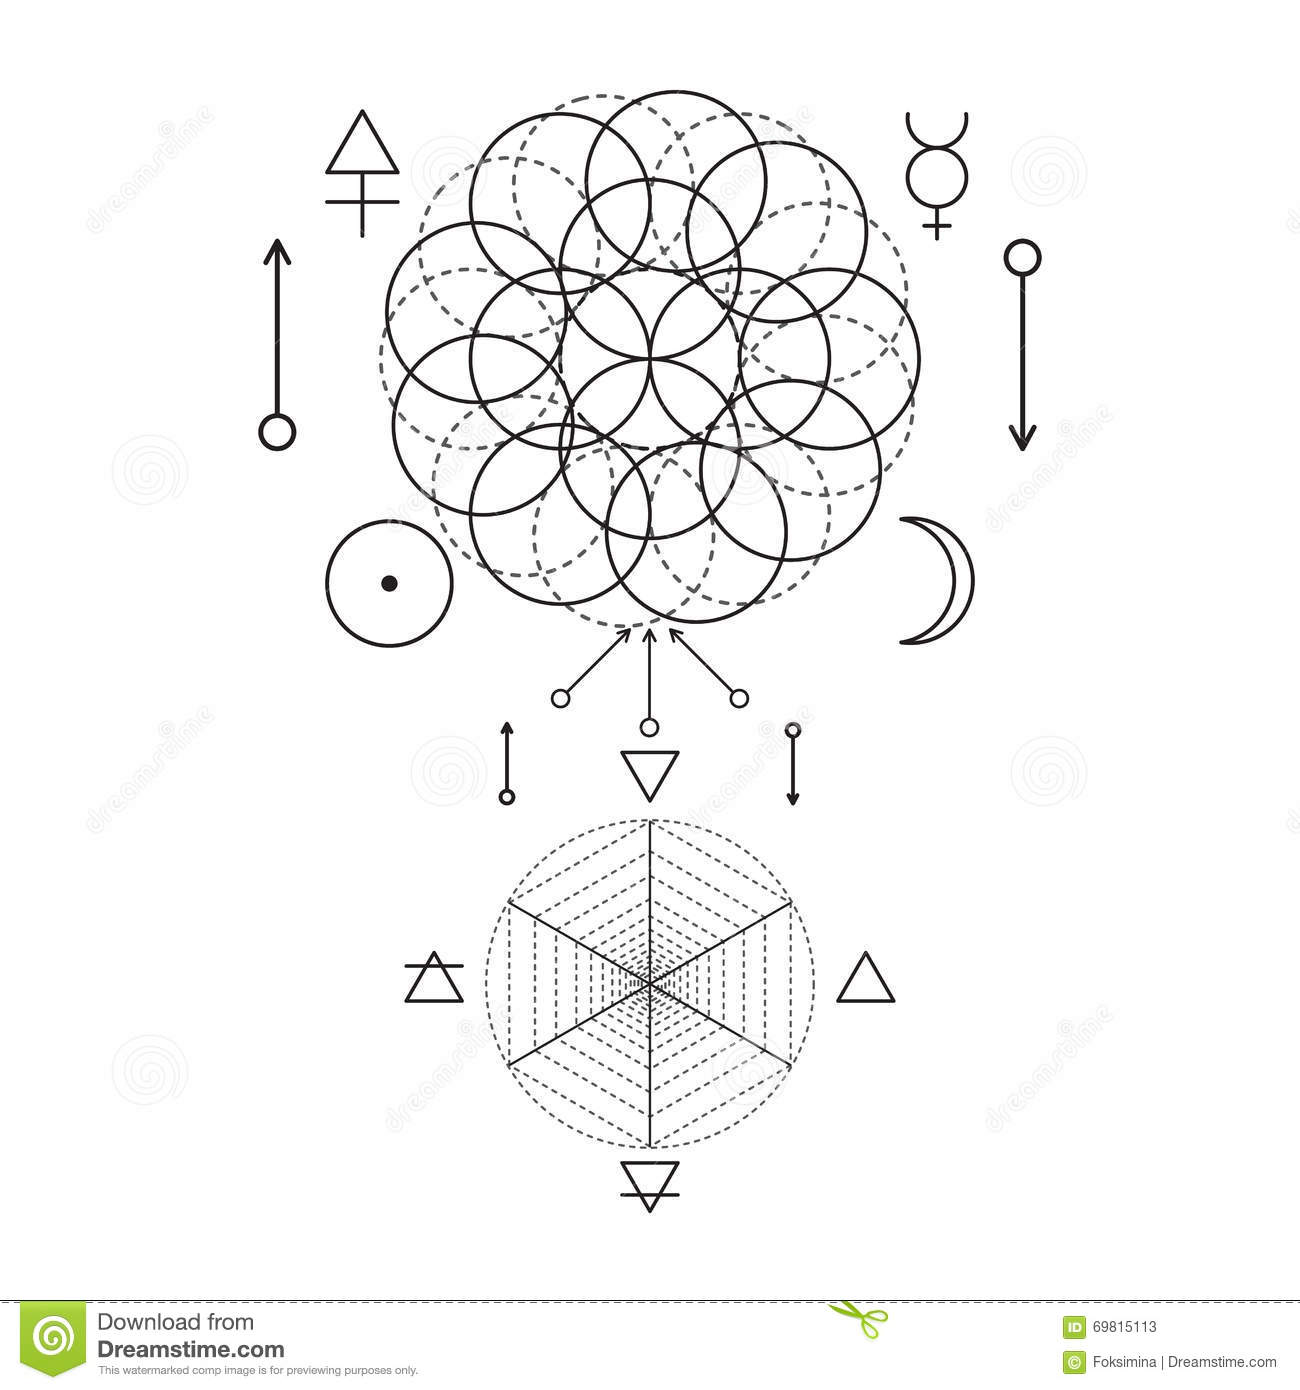 Symbol of alchemy and sacred geometry three primes spirit soul symbol of alchemy and sacred geometry three primes spirit soul body and 4 basic elements earth water air fire buycottarizona